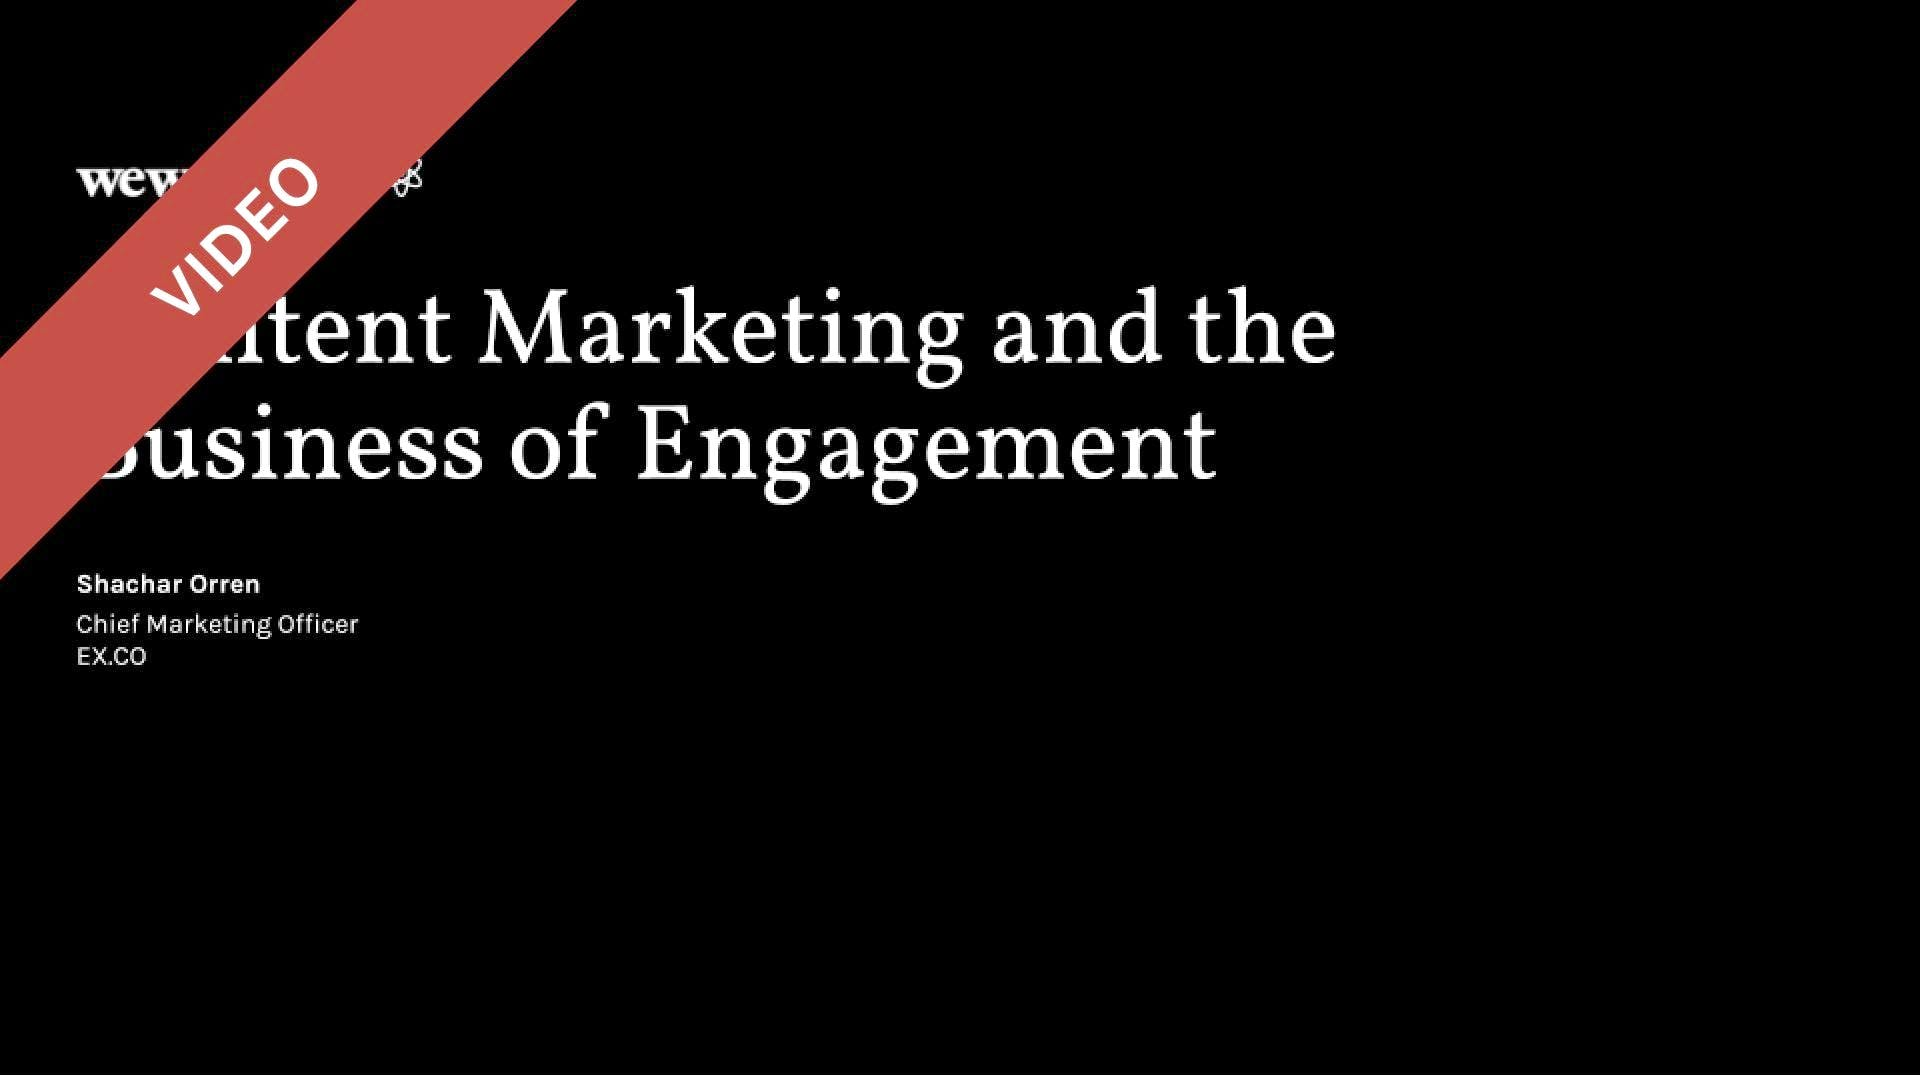 Content Marketing and the Business of Engagement